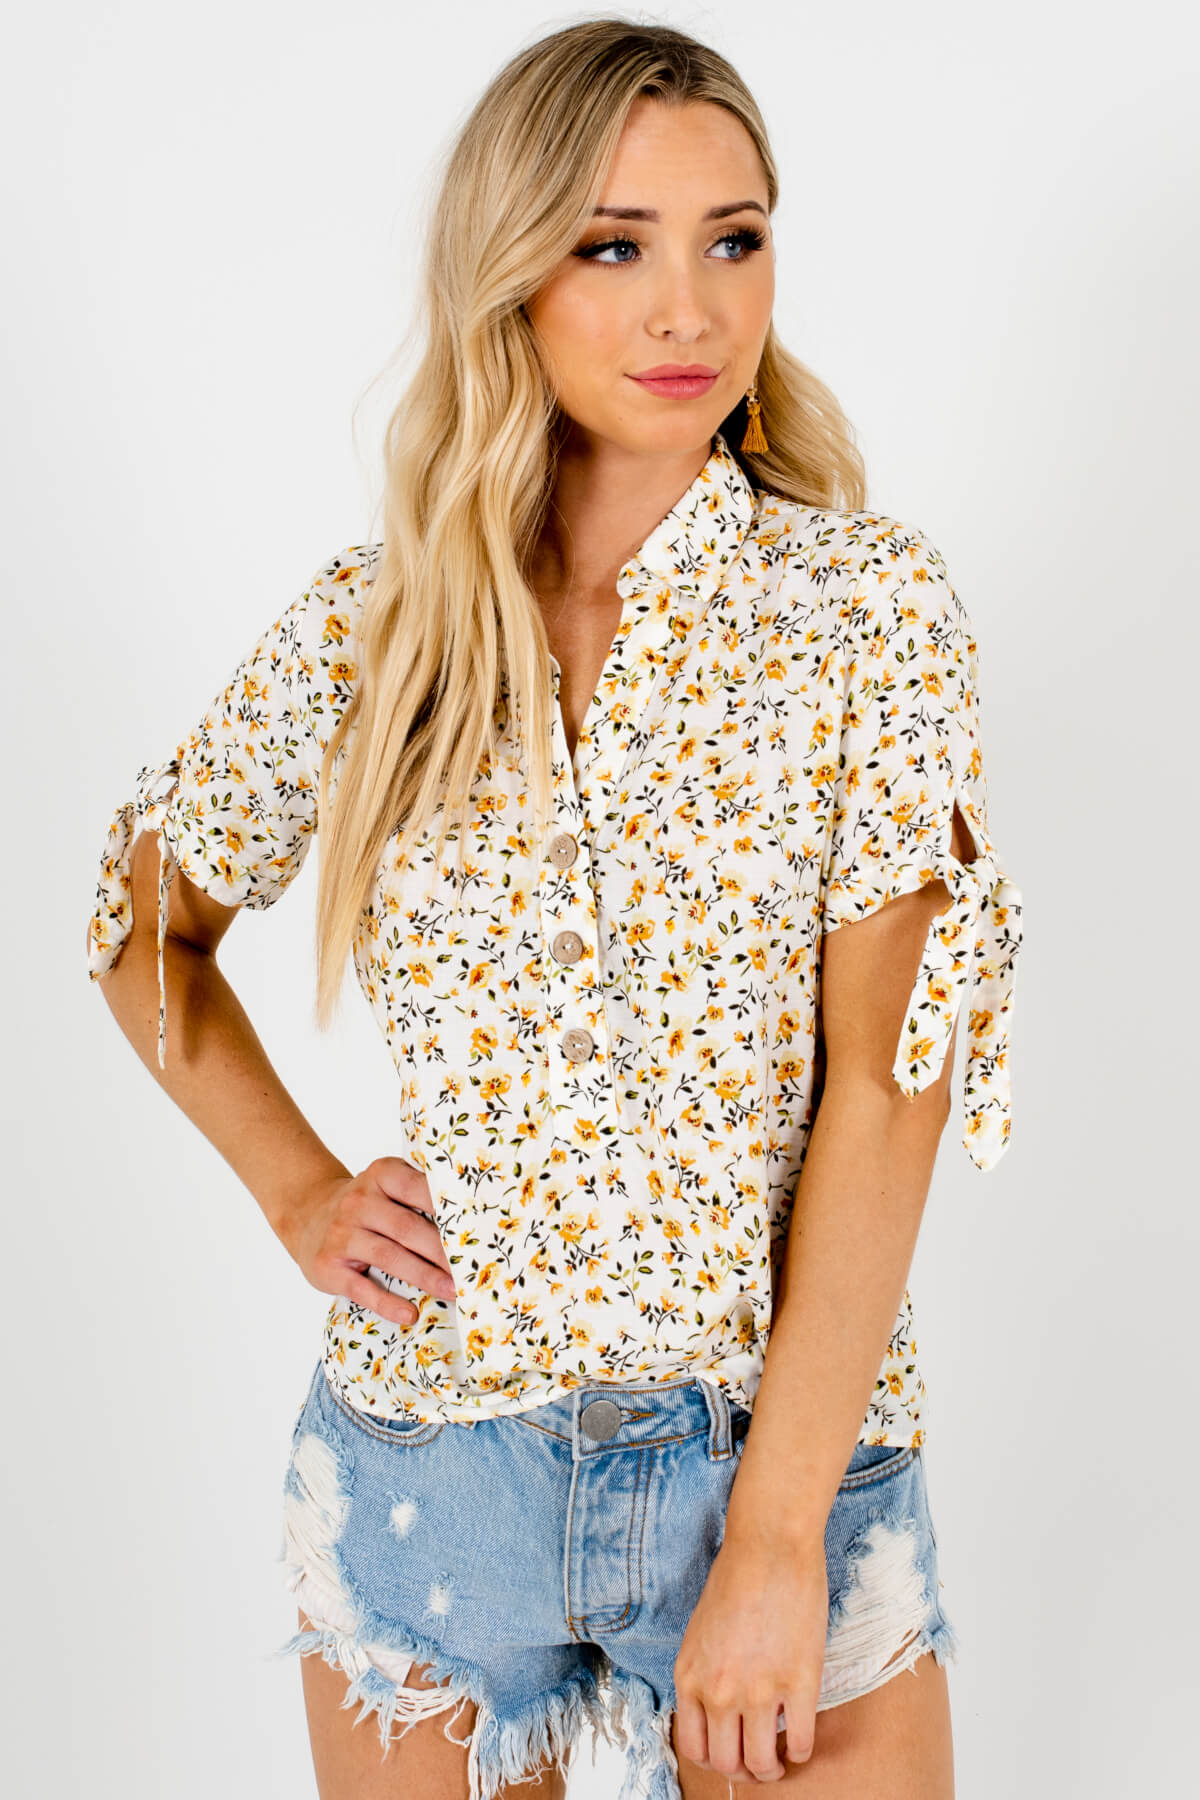 White Mustard Floral Print Button-Up Shirt Collar Blouses for Women